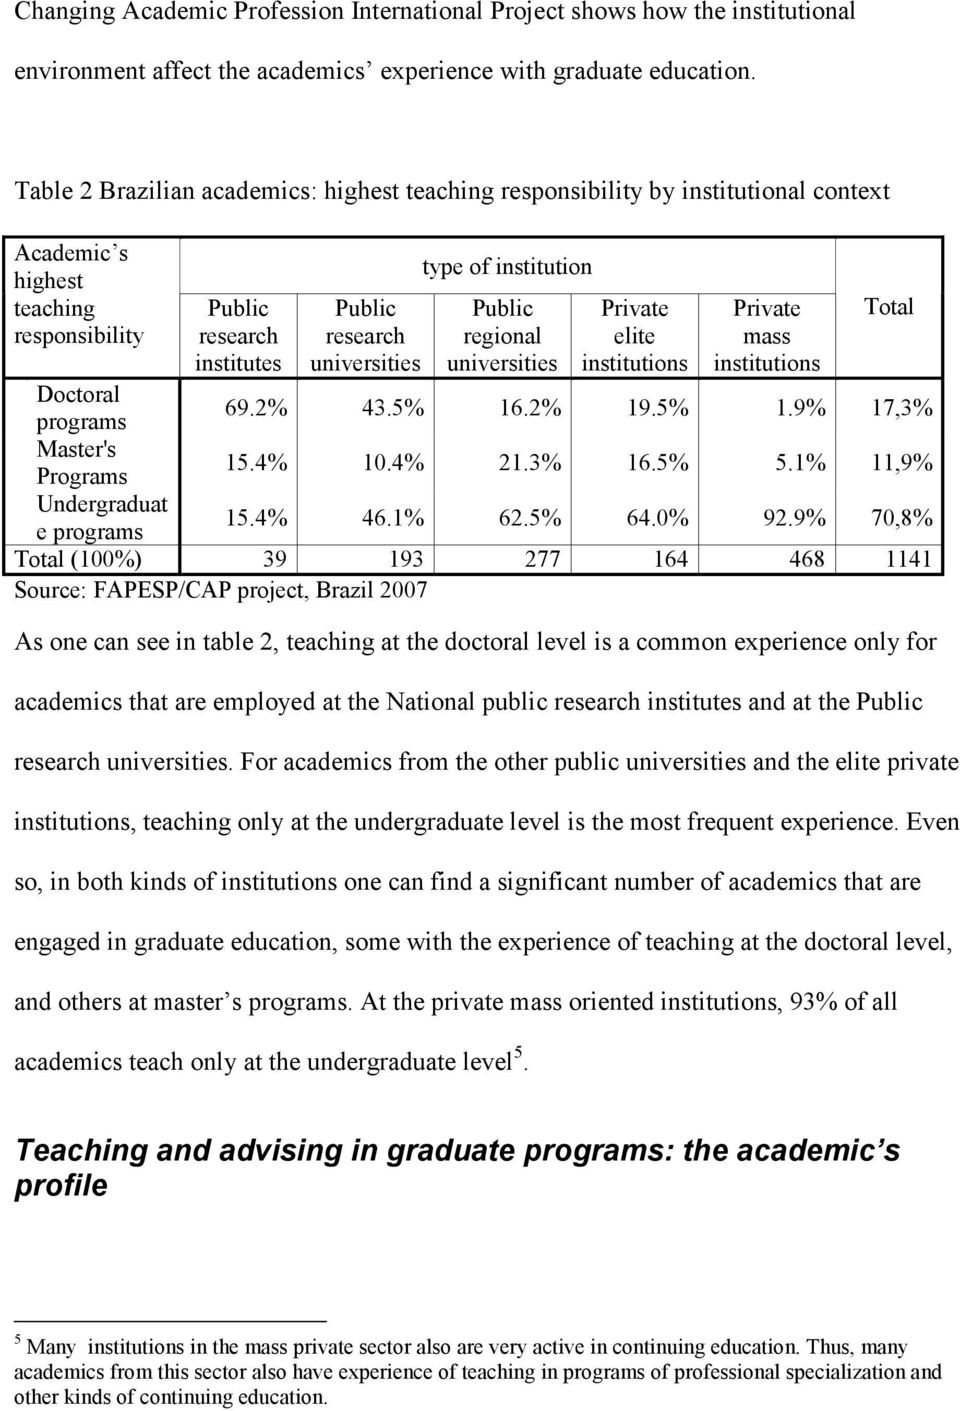 institution Public regional universities Private elite institutions Private mass institutions Total Doctoral programs 69.2% 43.5% 16.2% 19.5% 1.9% 17,3% Master's Programs 15.4% 10.4% 21.3% 16.5% 5.